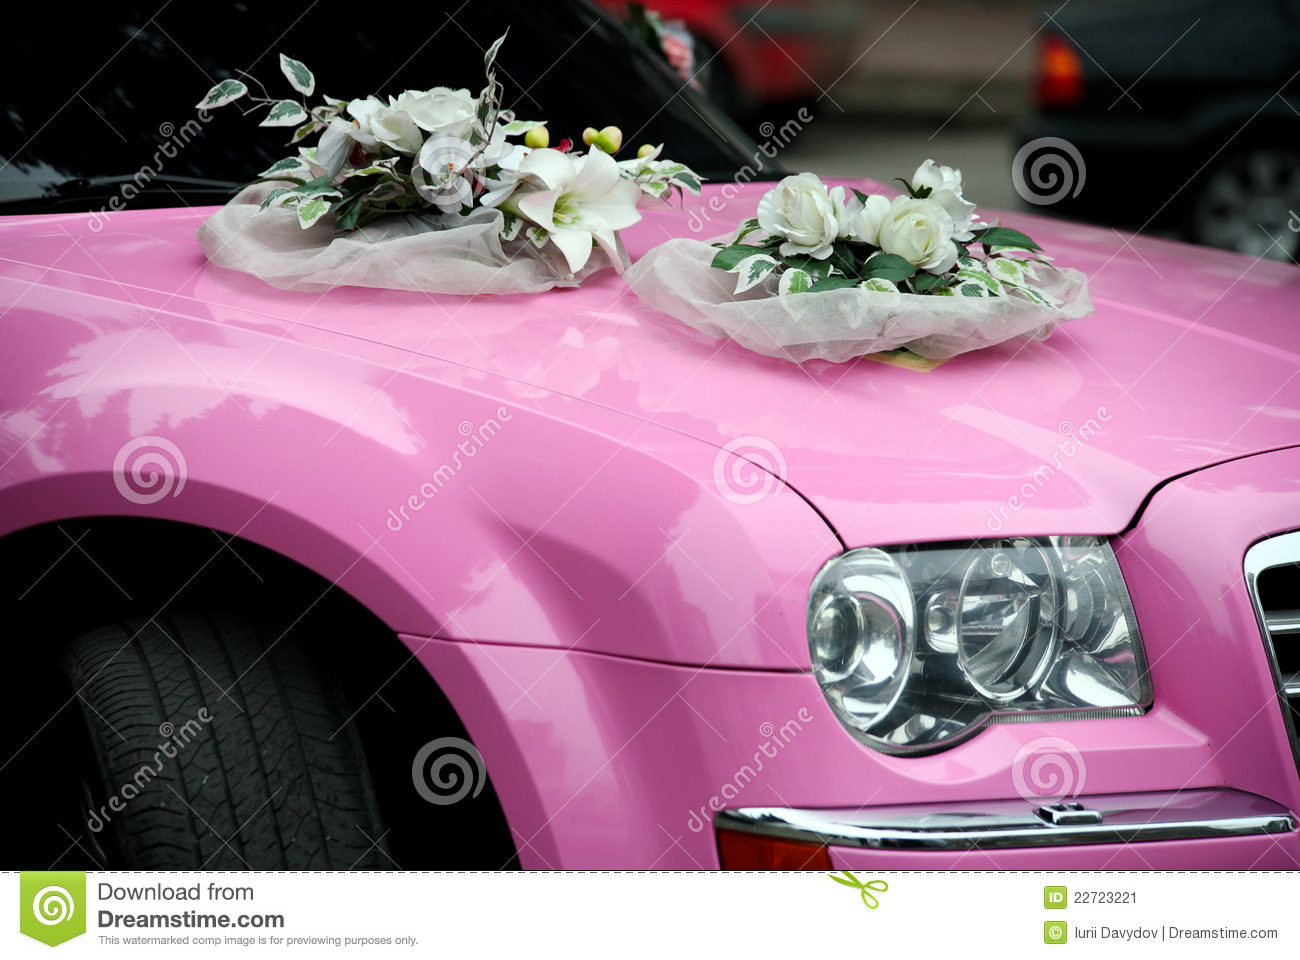 Pink Wedding Car With A Bouquet Of Flowers Stock Image - Image of ...